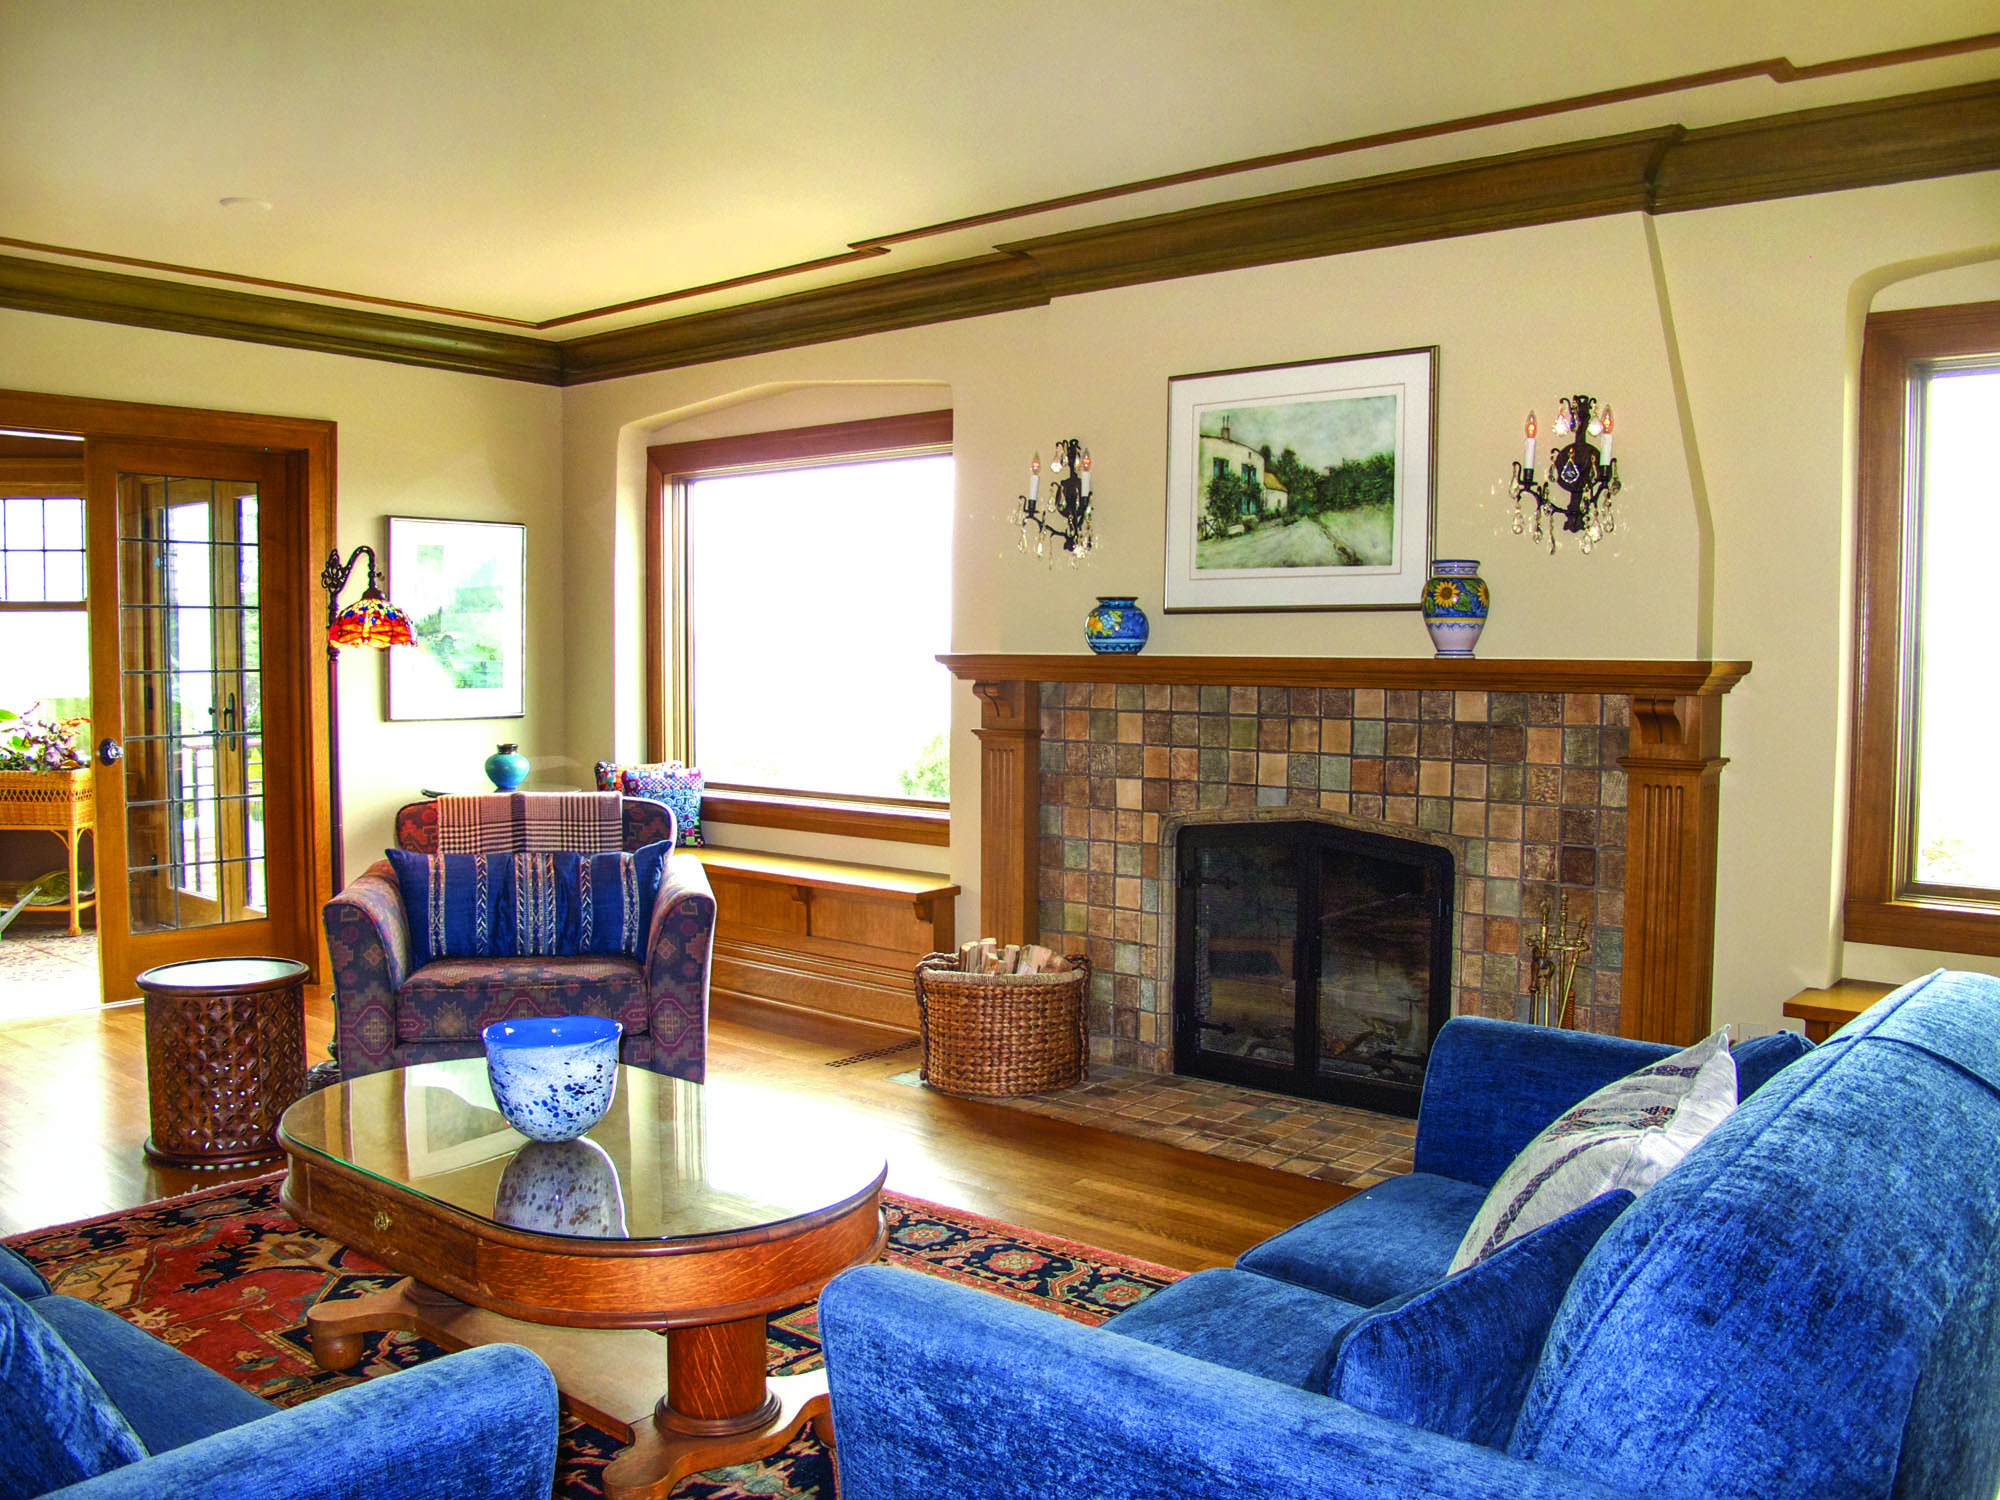 The original Batchelder fireplace and arched window wells in the living room are original.